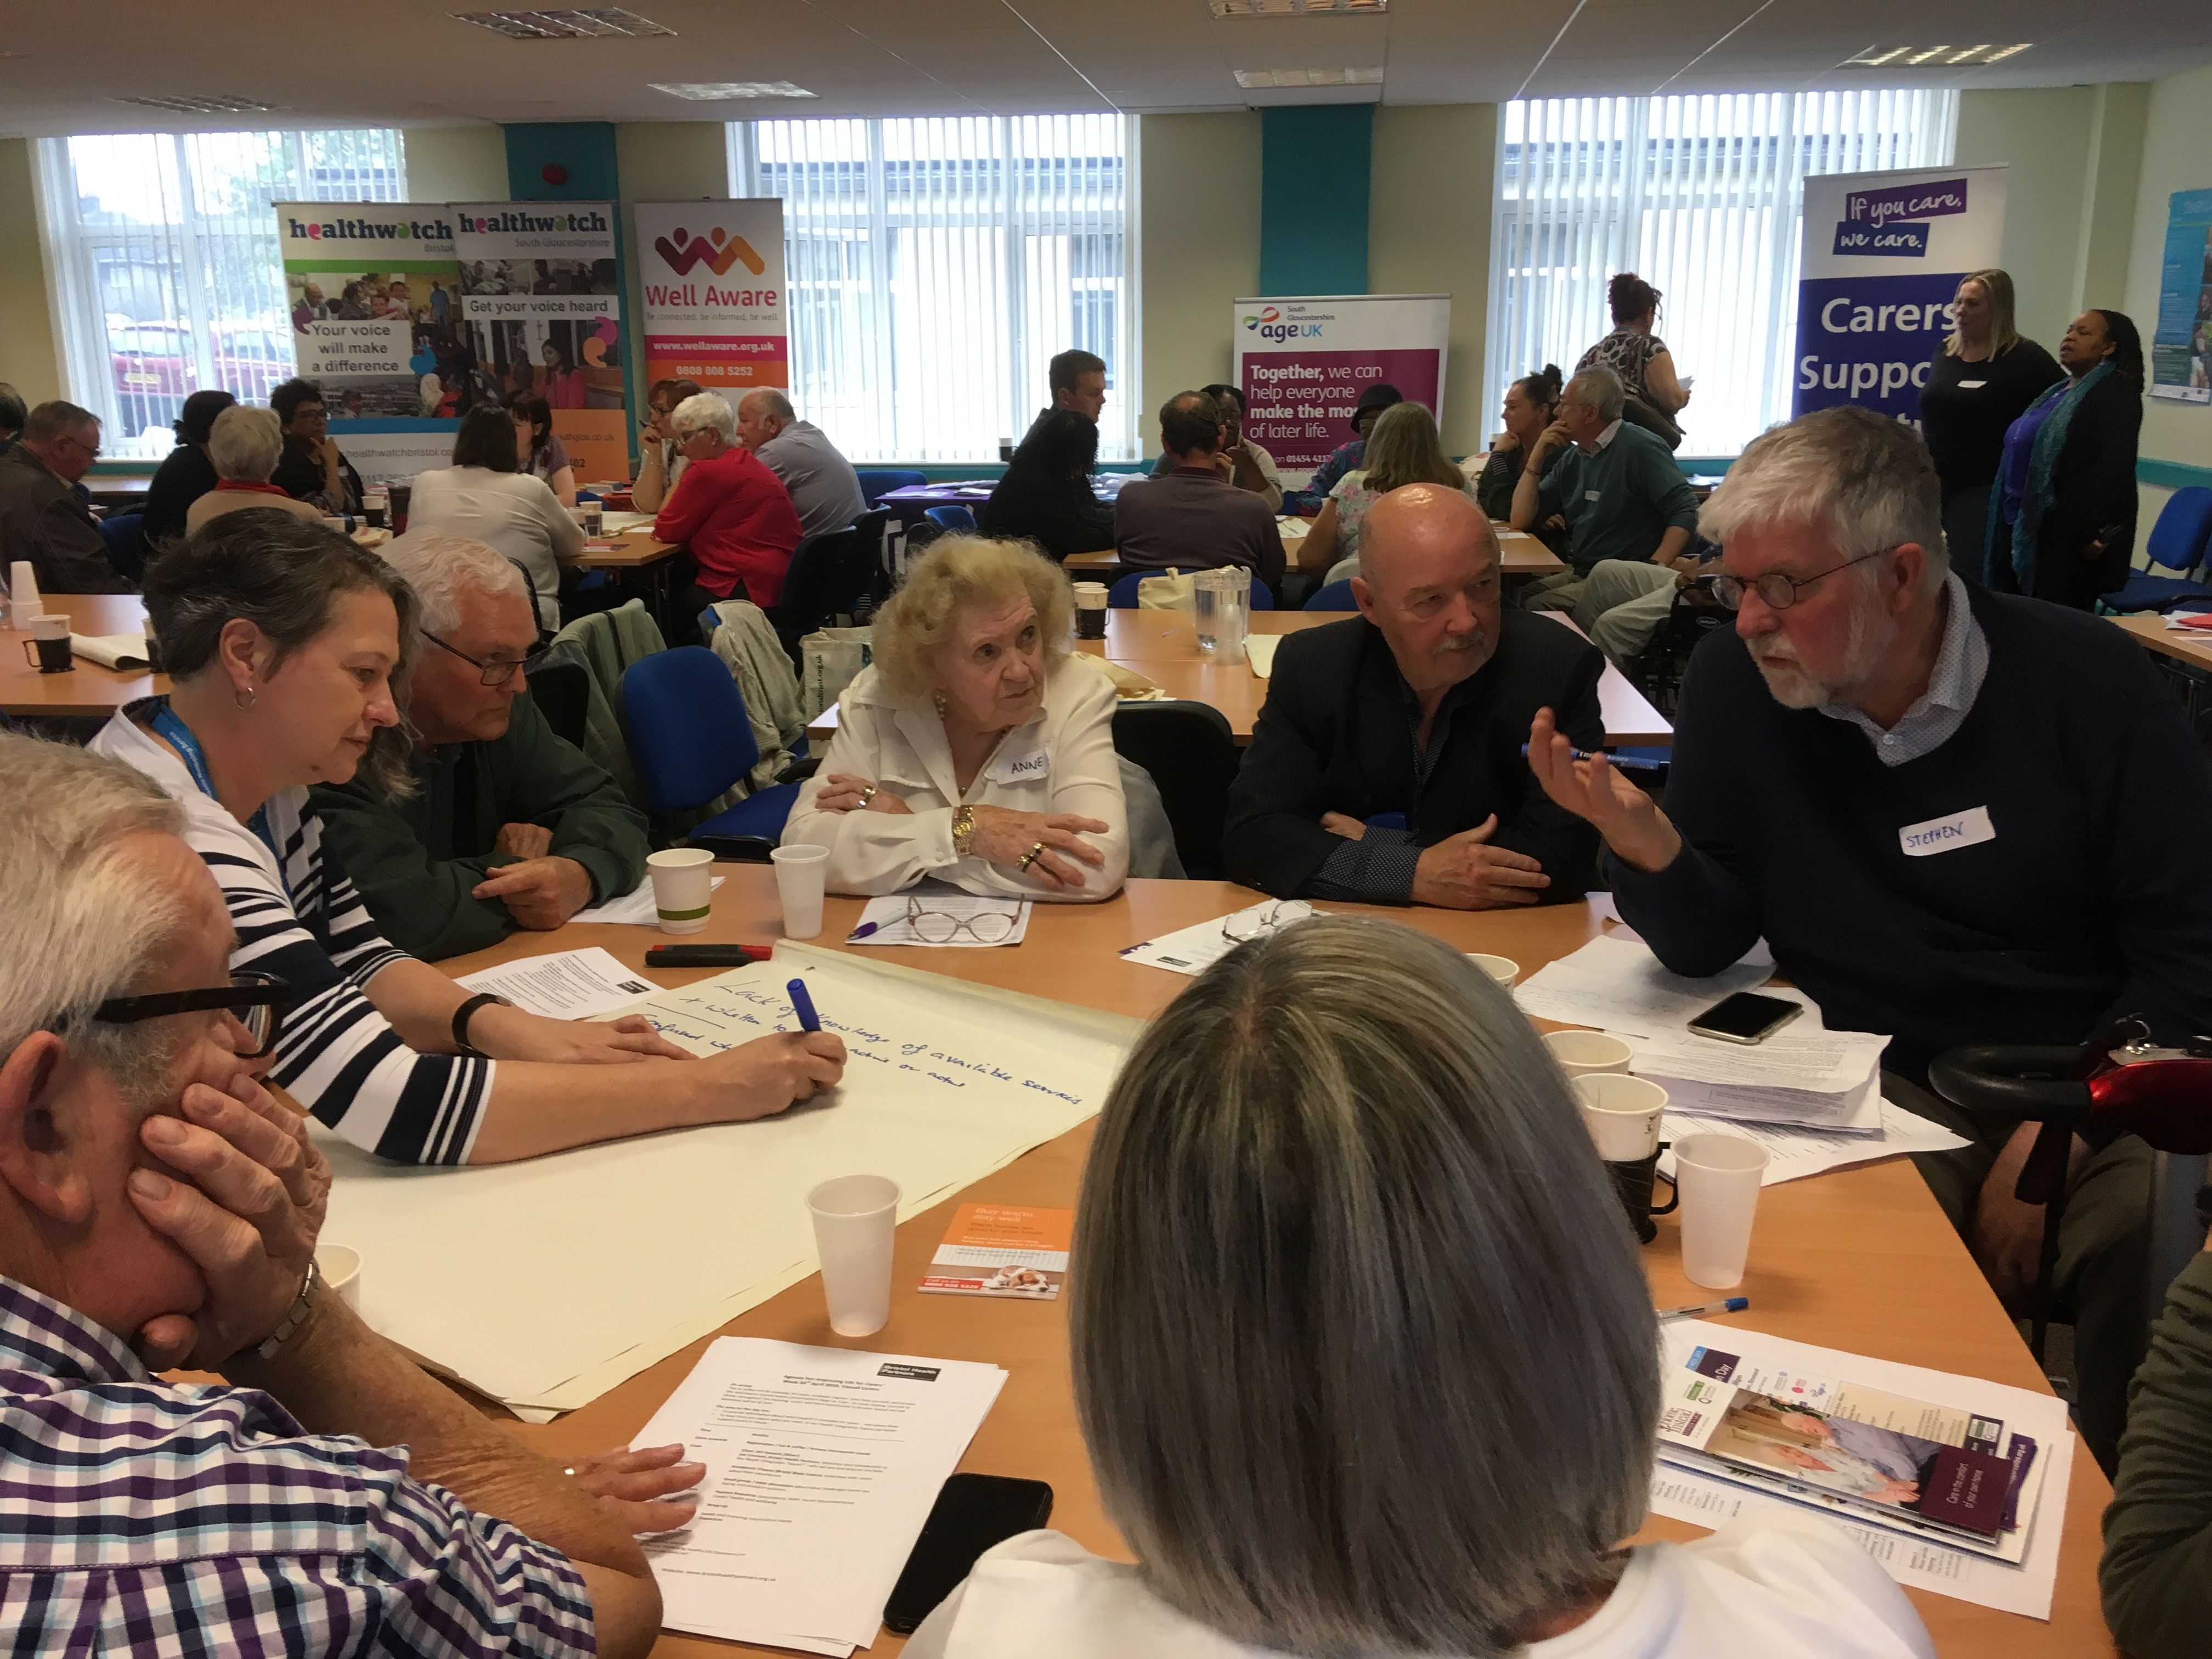 HITs carers event offers information and support